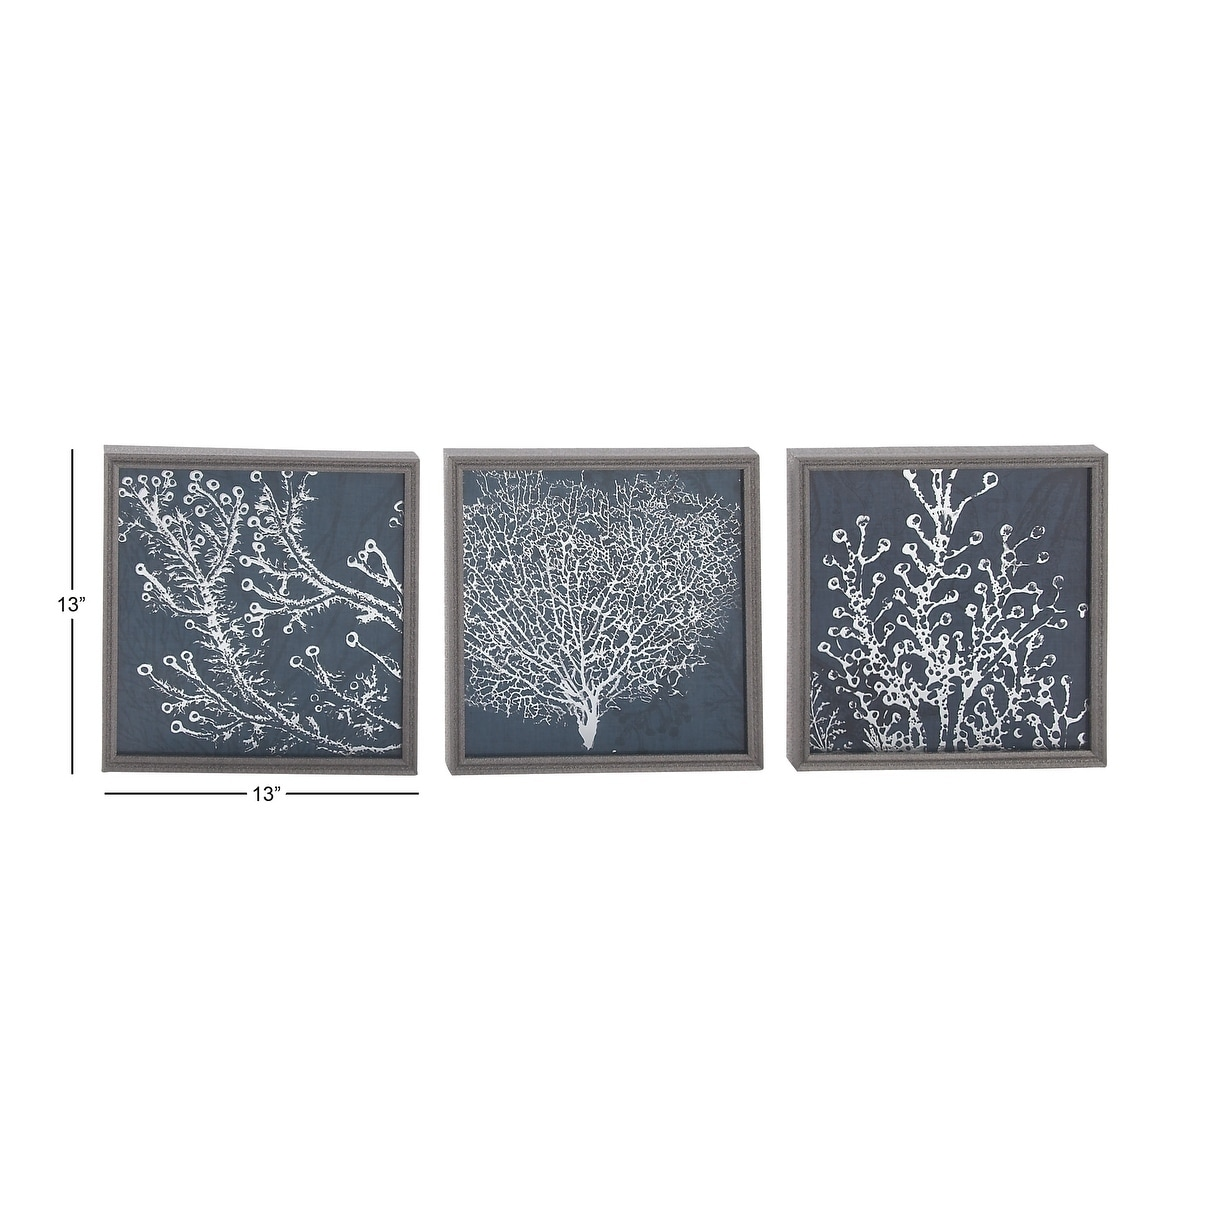 Modern 13 inch wooden framed coral wall decor set of 3 by studio 350 blue